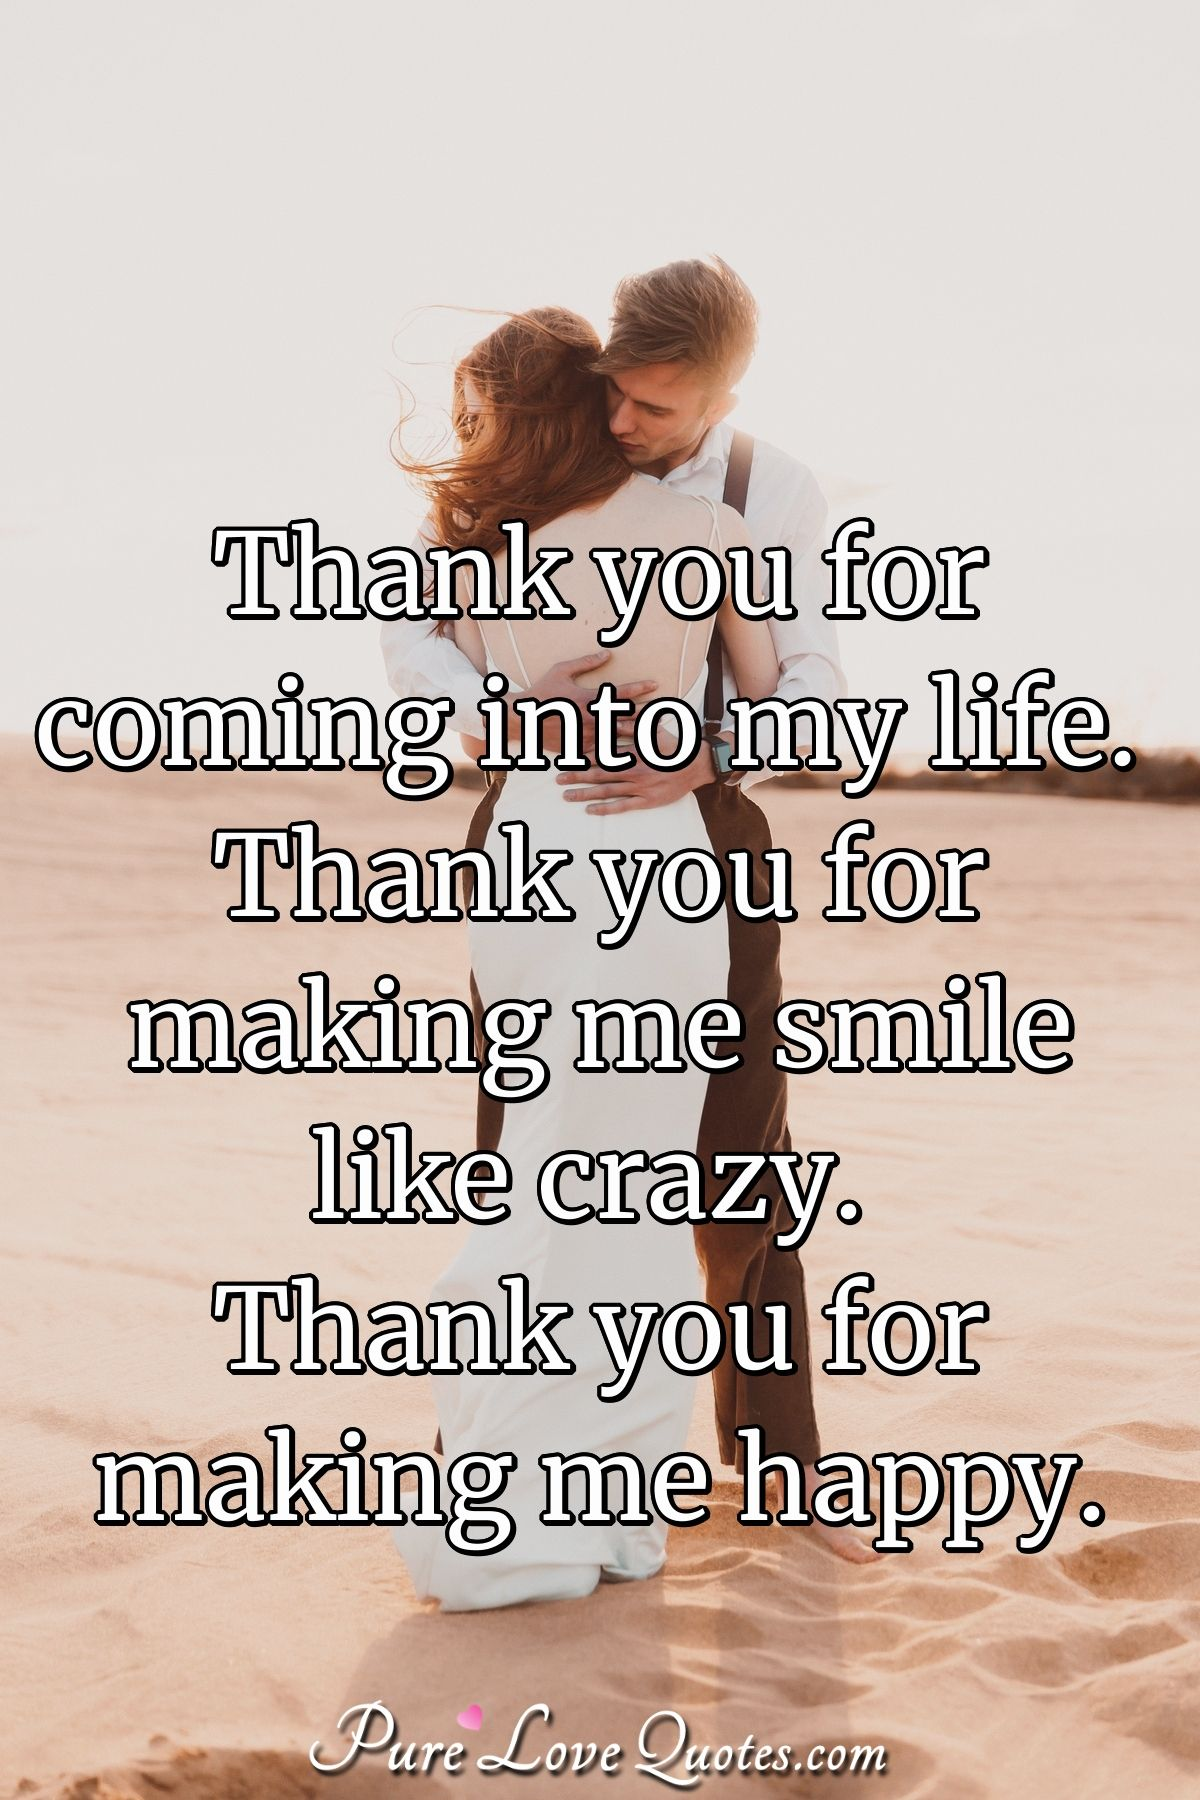 Thank You For Coming Into My Life : thank, coming, Thank, Coming, Life., Making, Smile, Crazy...., PureLoveQuotes